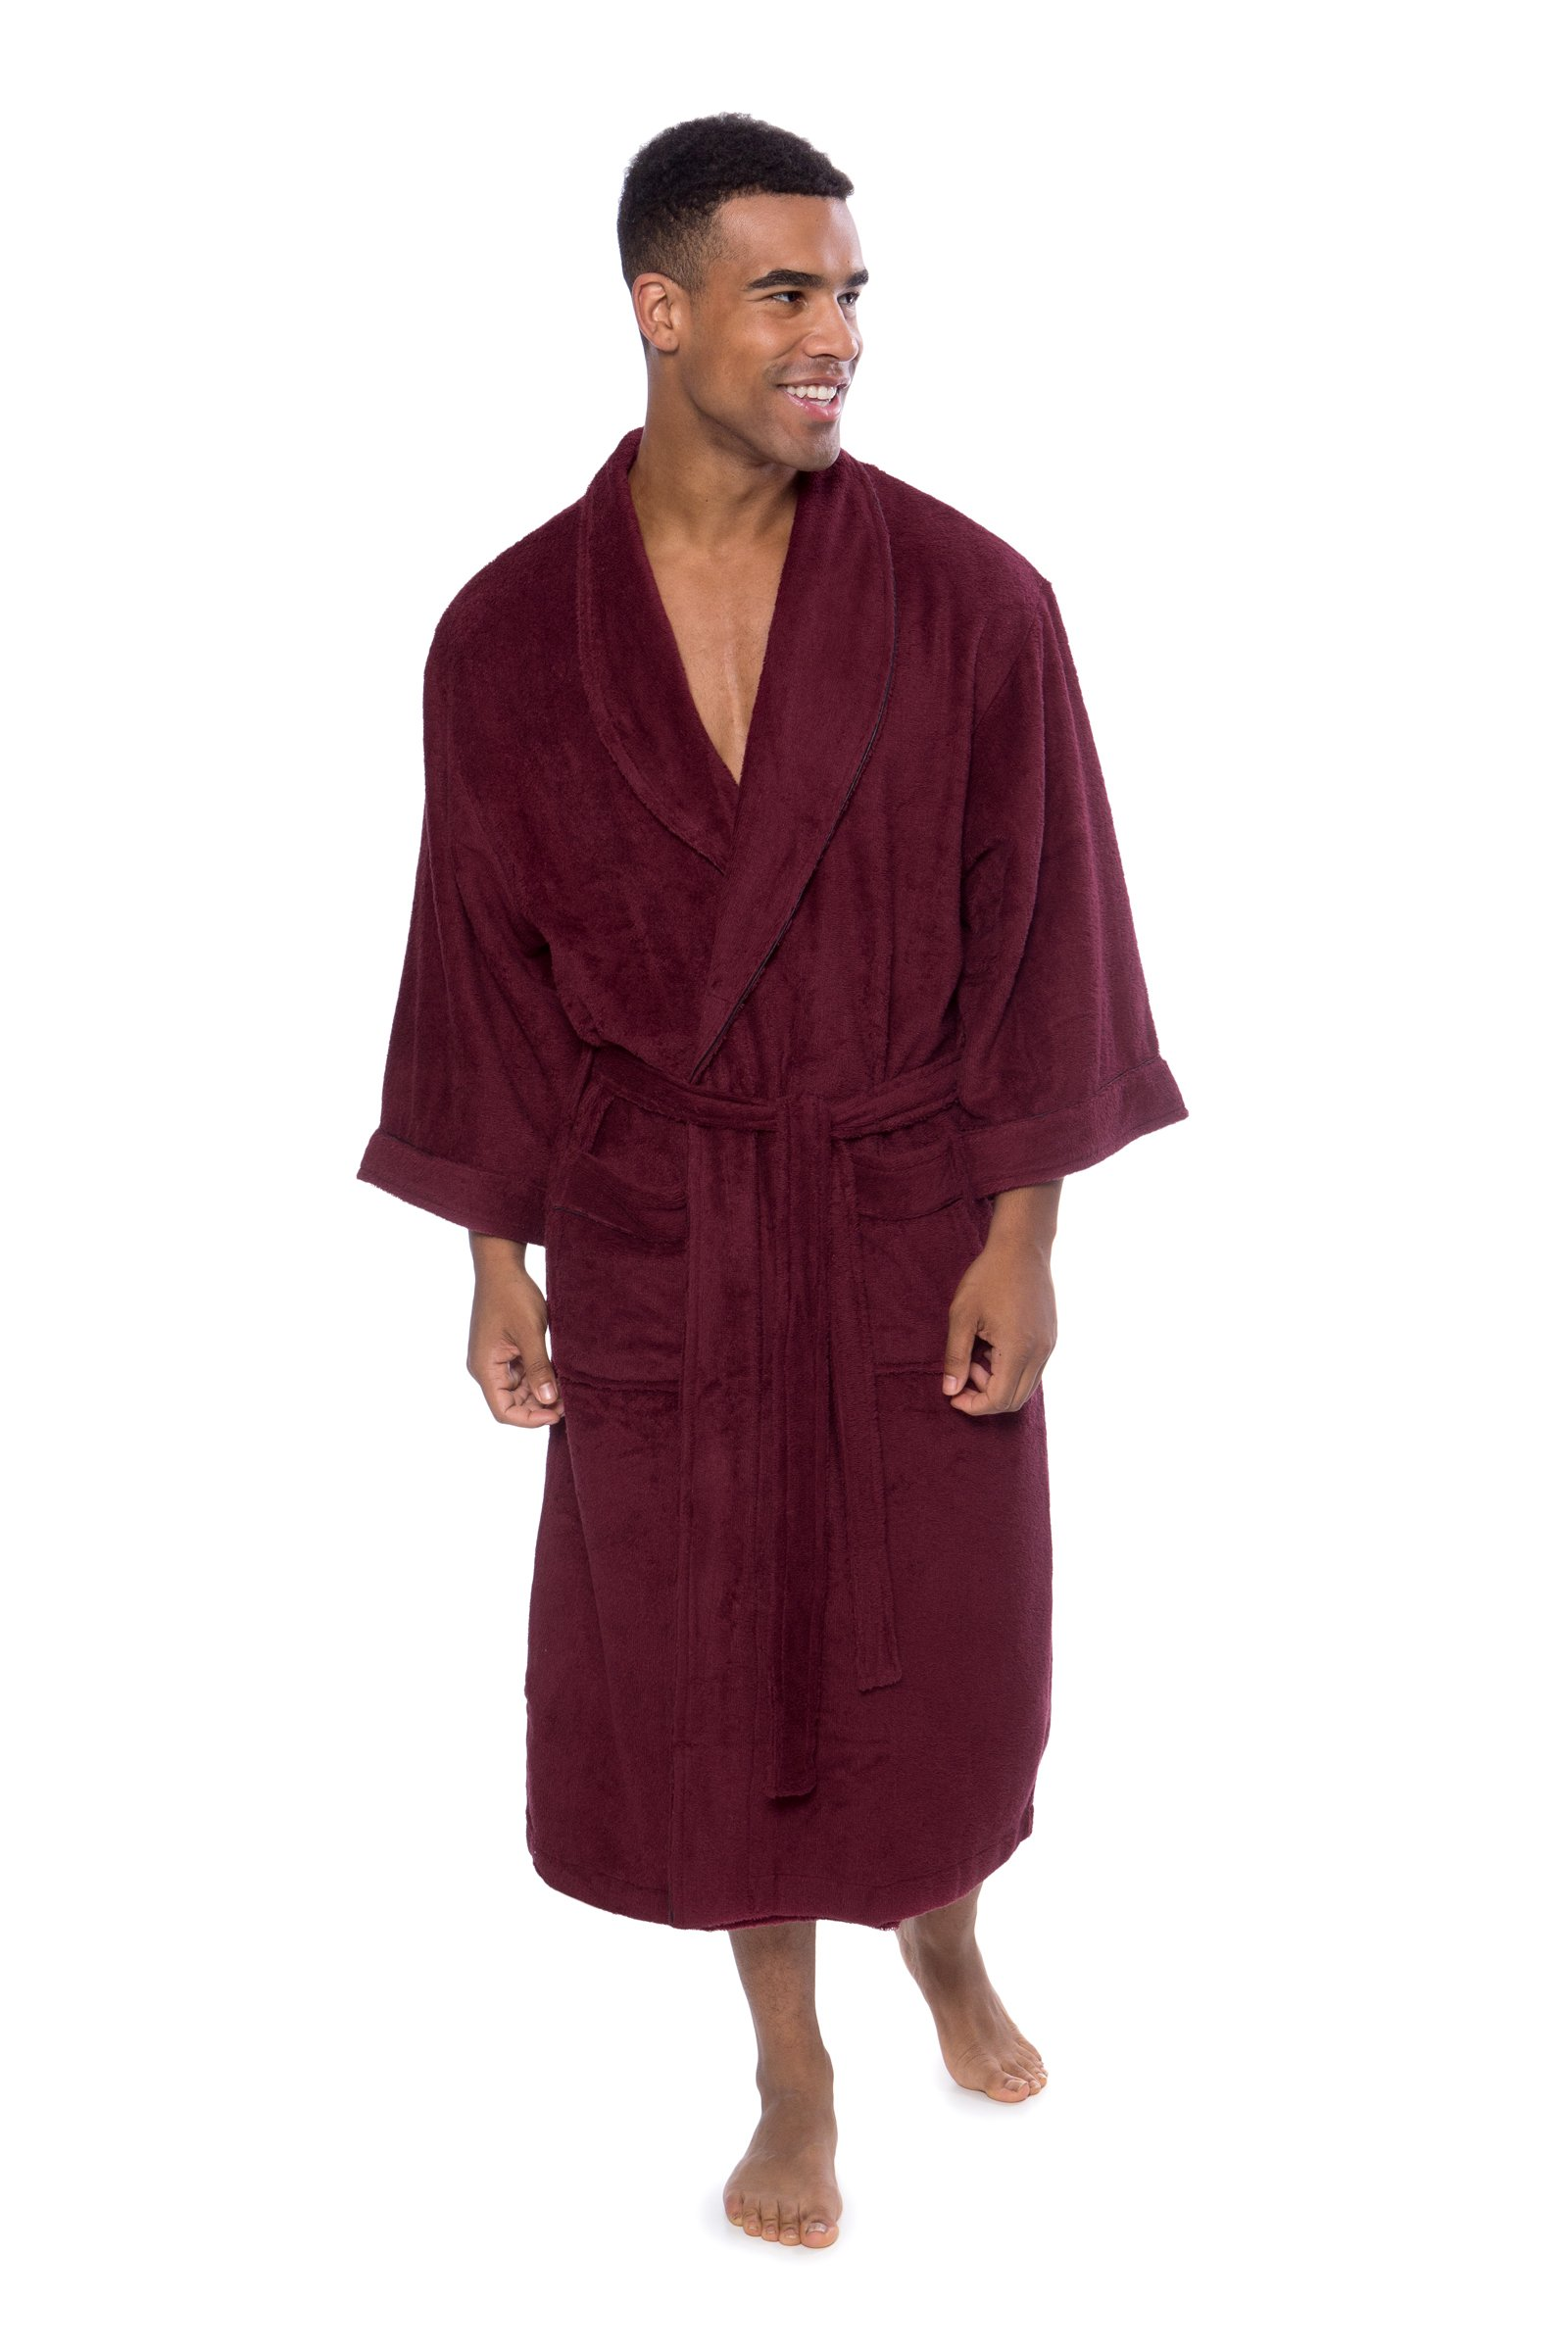 Men's Luxury Terry Cloth Bathrobe - Soft Spa Robe by Texere (EcoComfort, Burgundy, Large/X-Large ) Top Gifts for Men MB0101-BRG-LXL